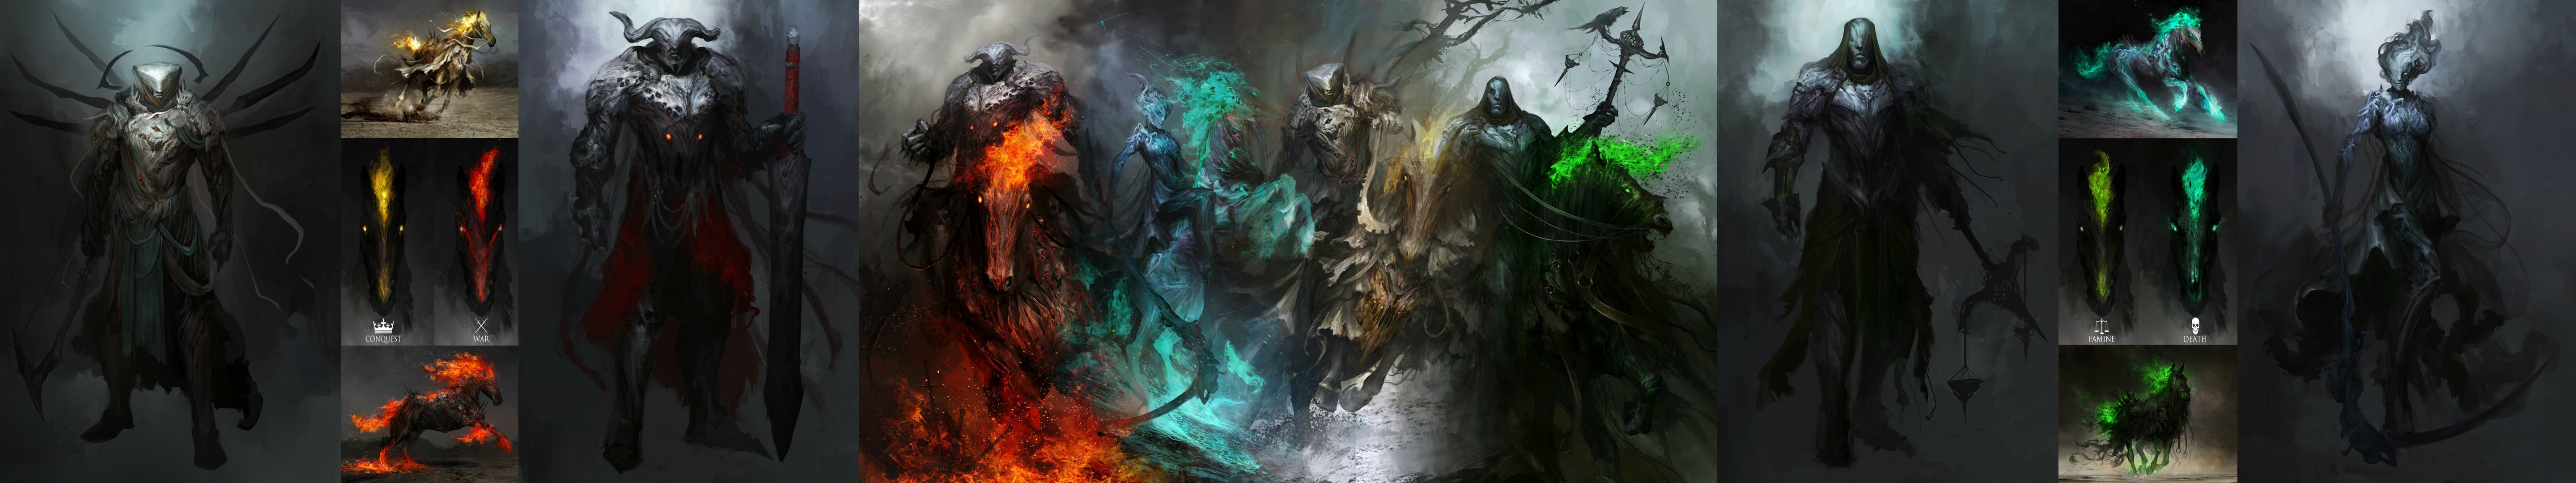 Horsemen of the Apocalypse [5760x1080] | wallpapers ...